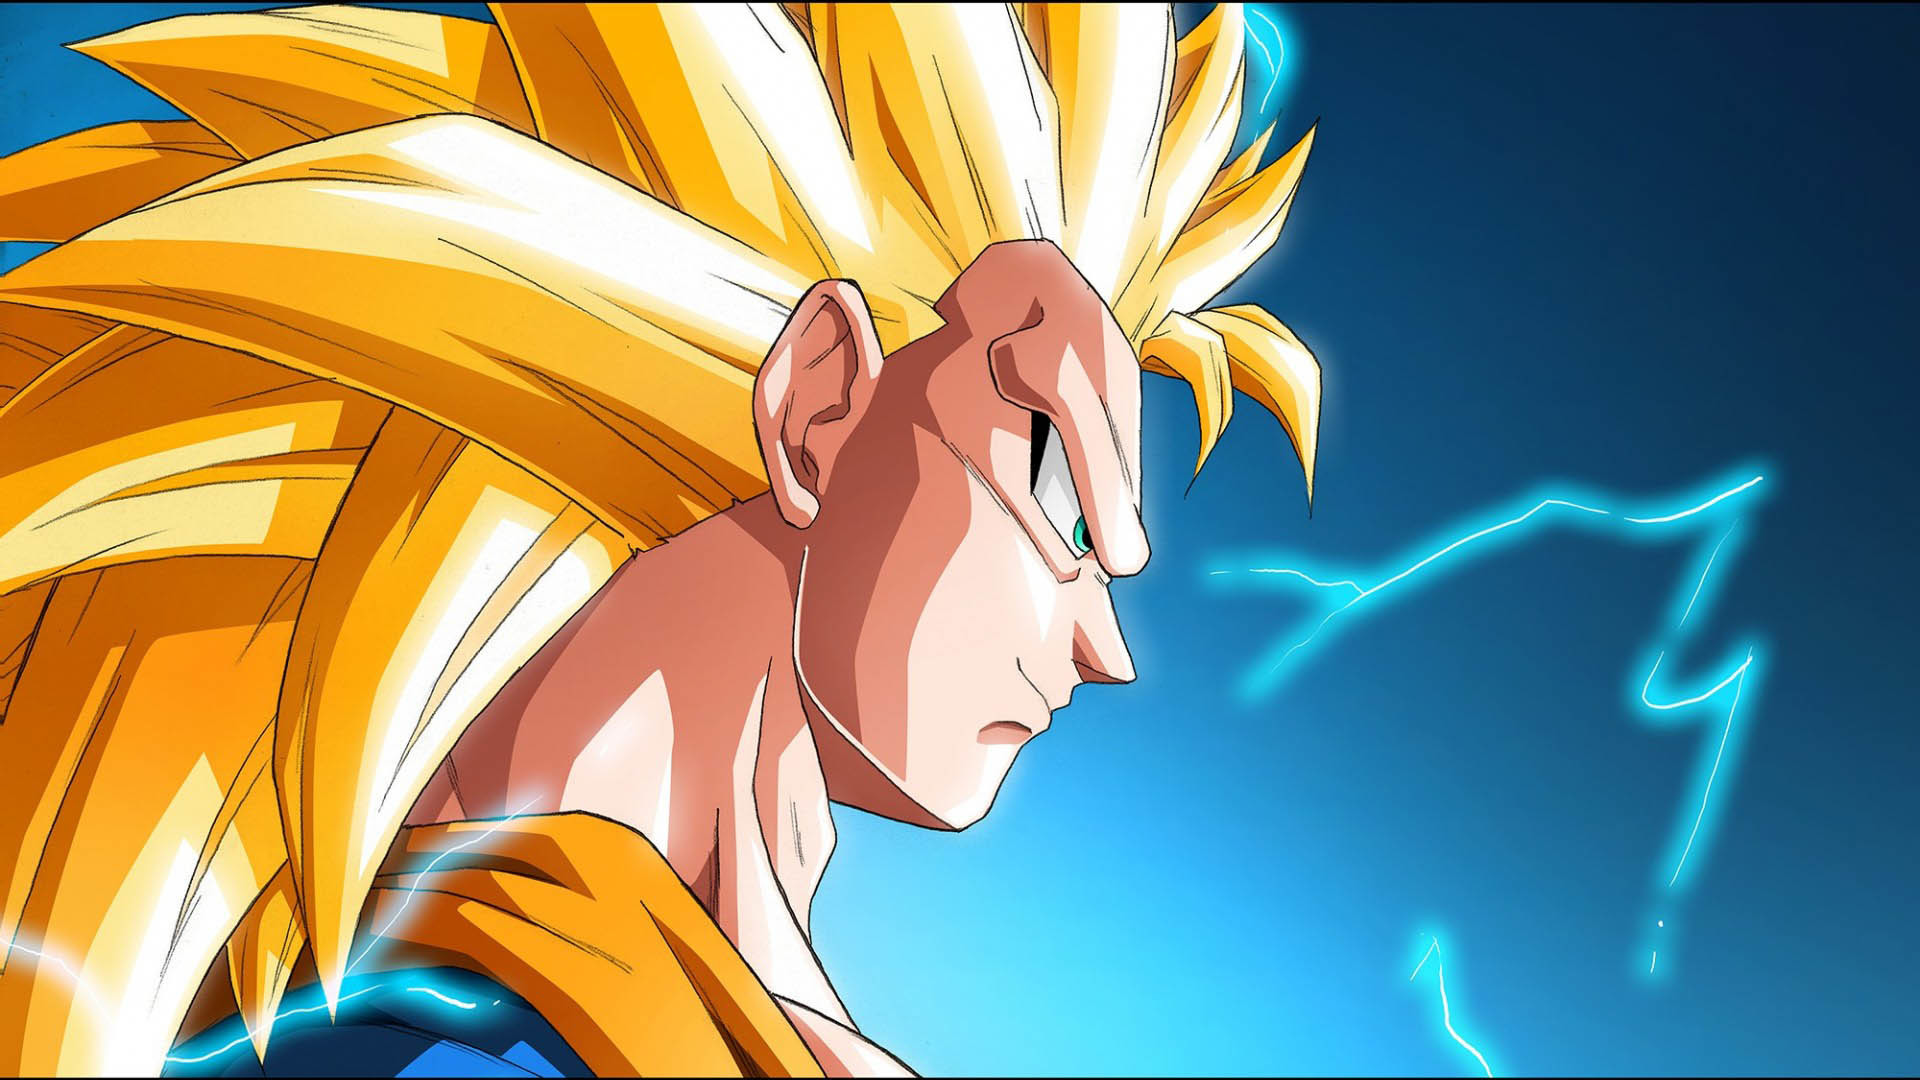 1920x1080 Son Goku Super Saiyan 3 Wallpaper Download